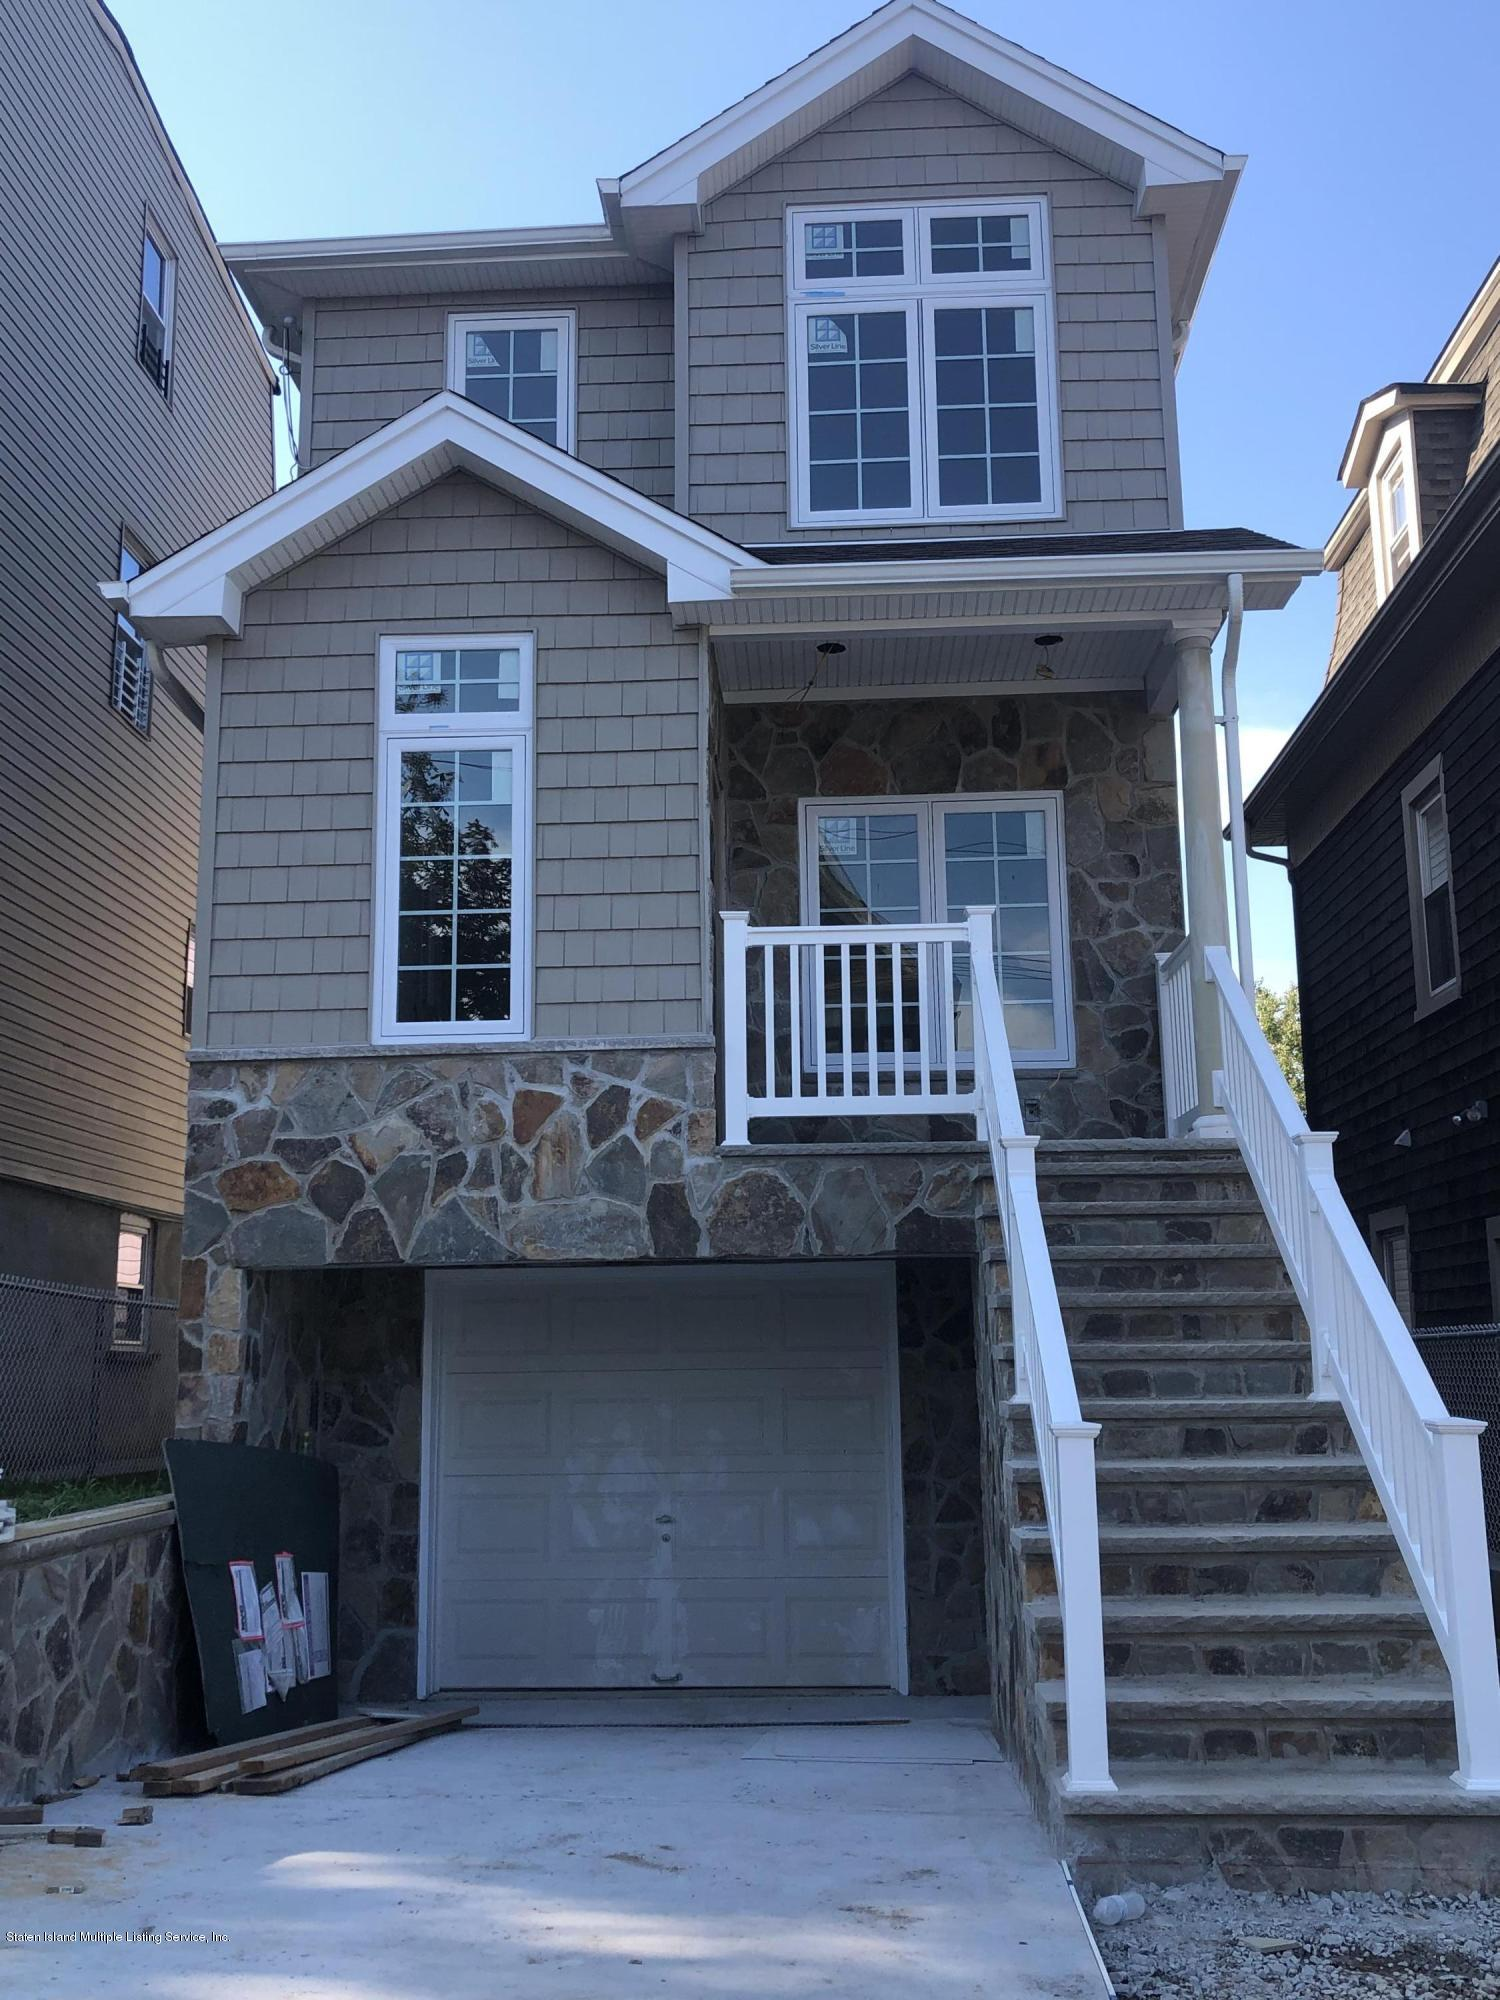 Single Family - Detached 34 Scribner Avenue  Staten Island, NY 10301, MLS-1130252-11